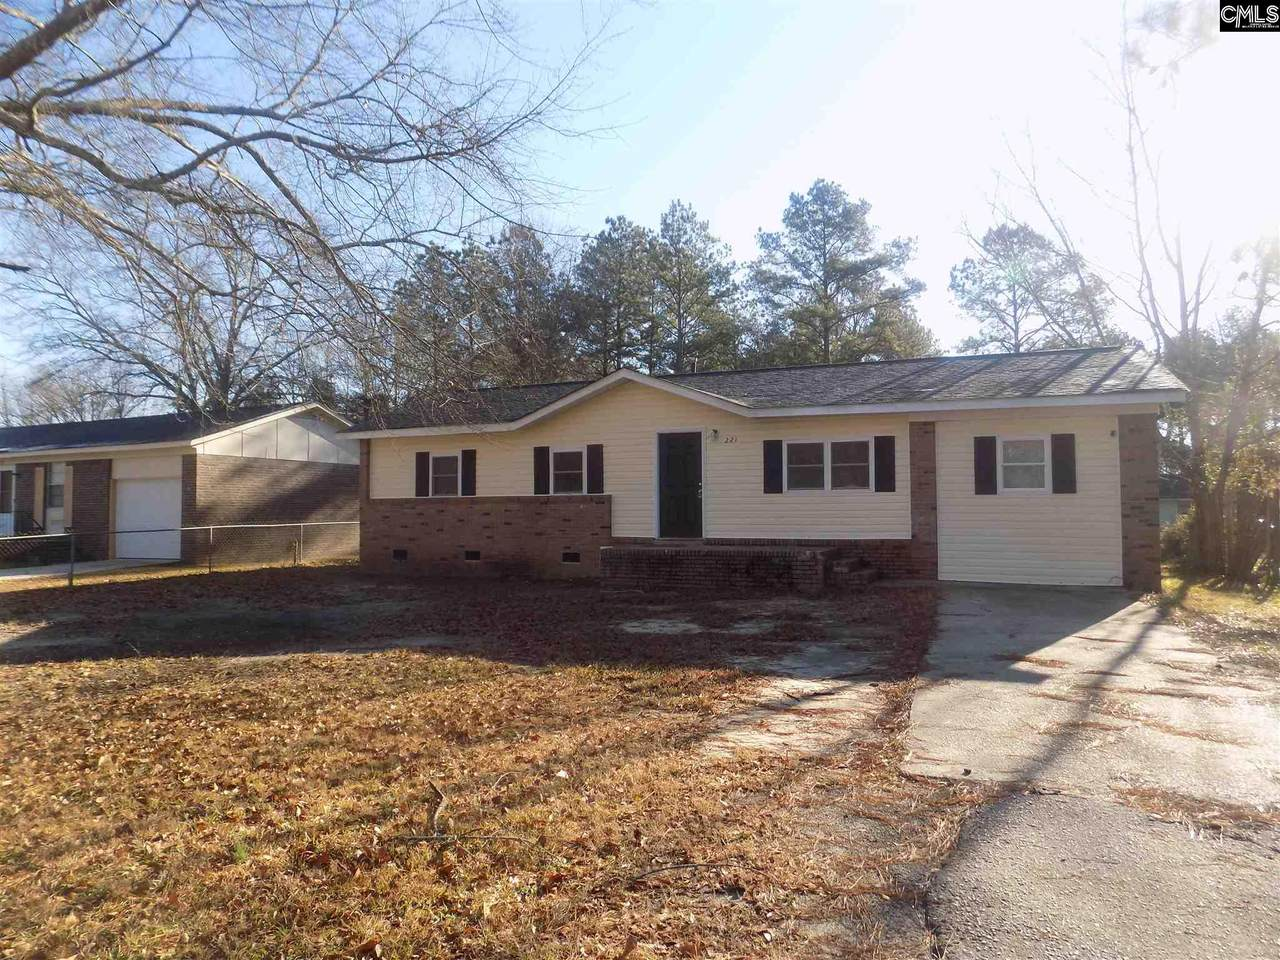 221 Ault Rd - Photo 1